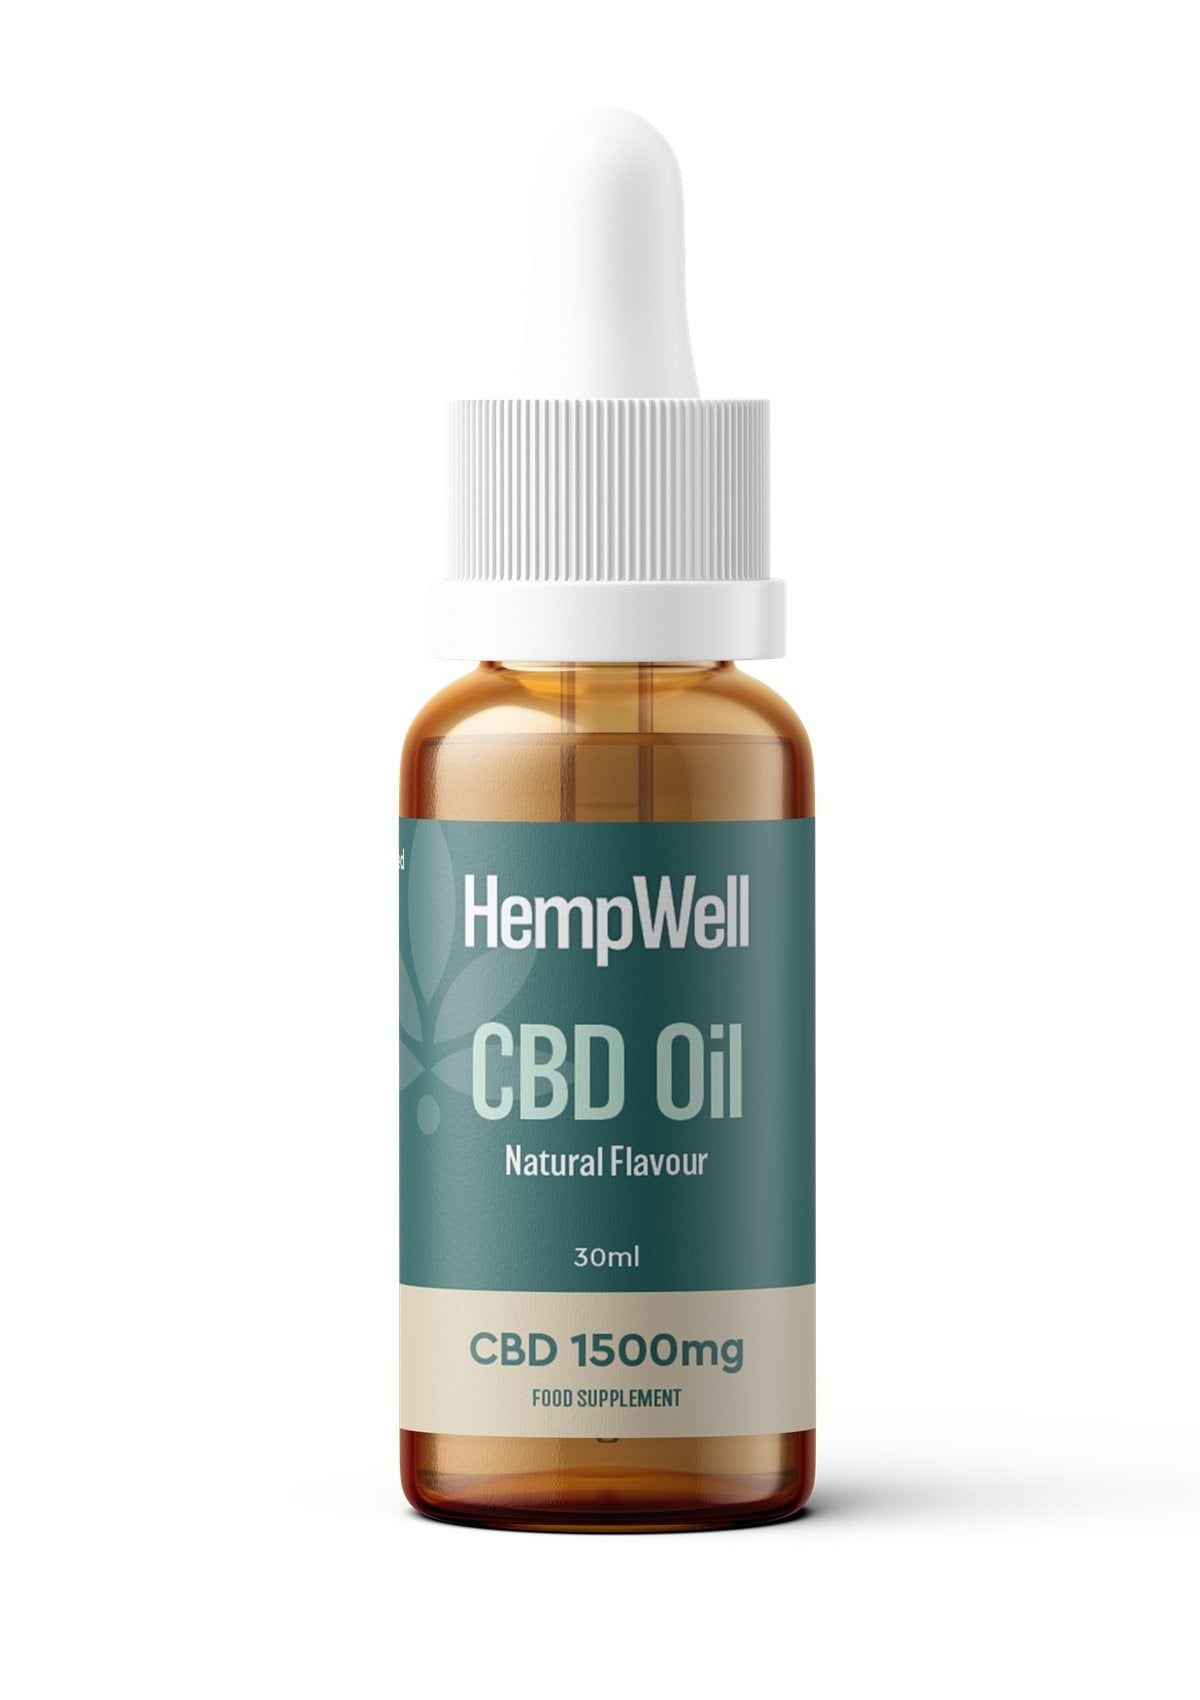 HempWell CBD Oil | 1500mg CBD | 30ml Bottle freeshipping - CBDSupermarket